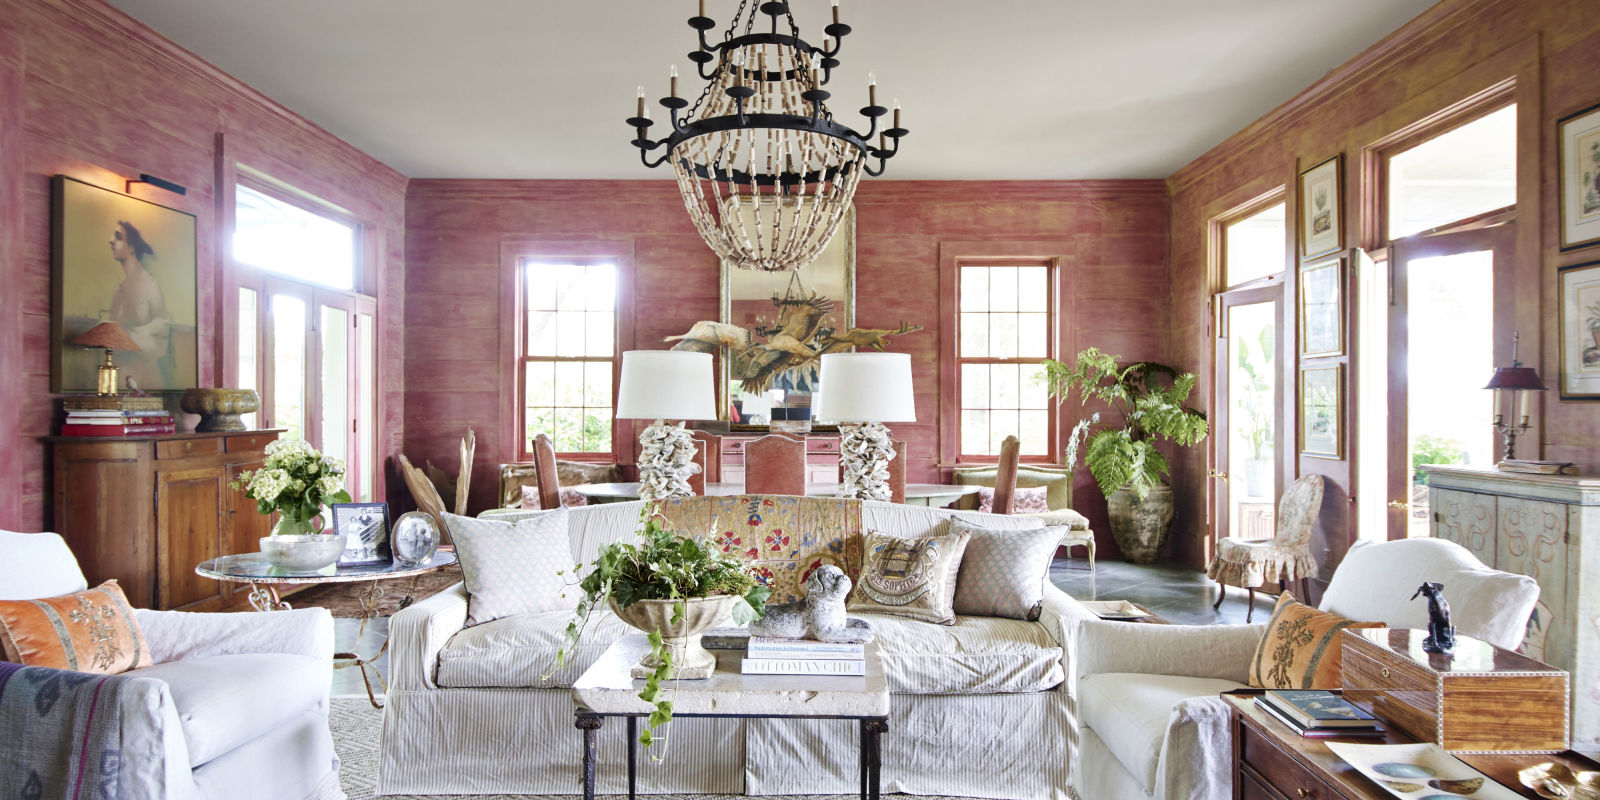 Interior Design Tips For Living Room How To Decorate Your First Apartment First Apartment Decorating